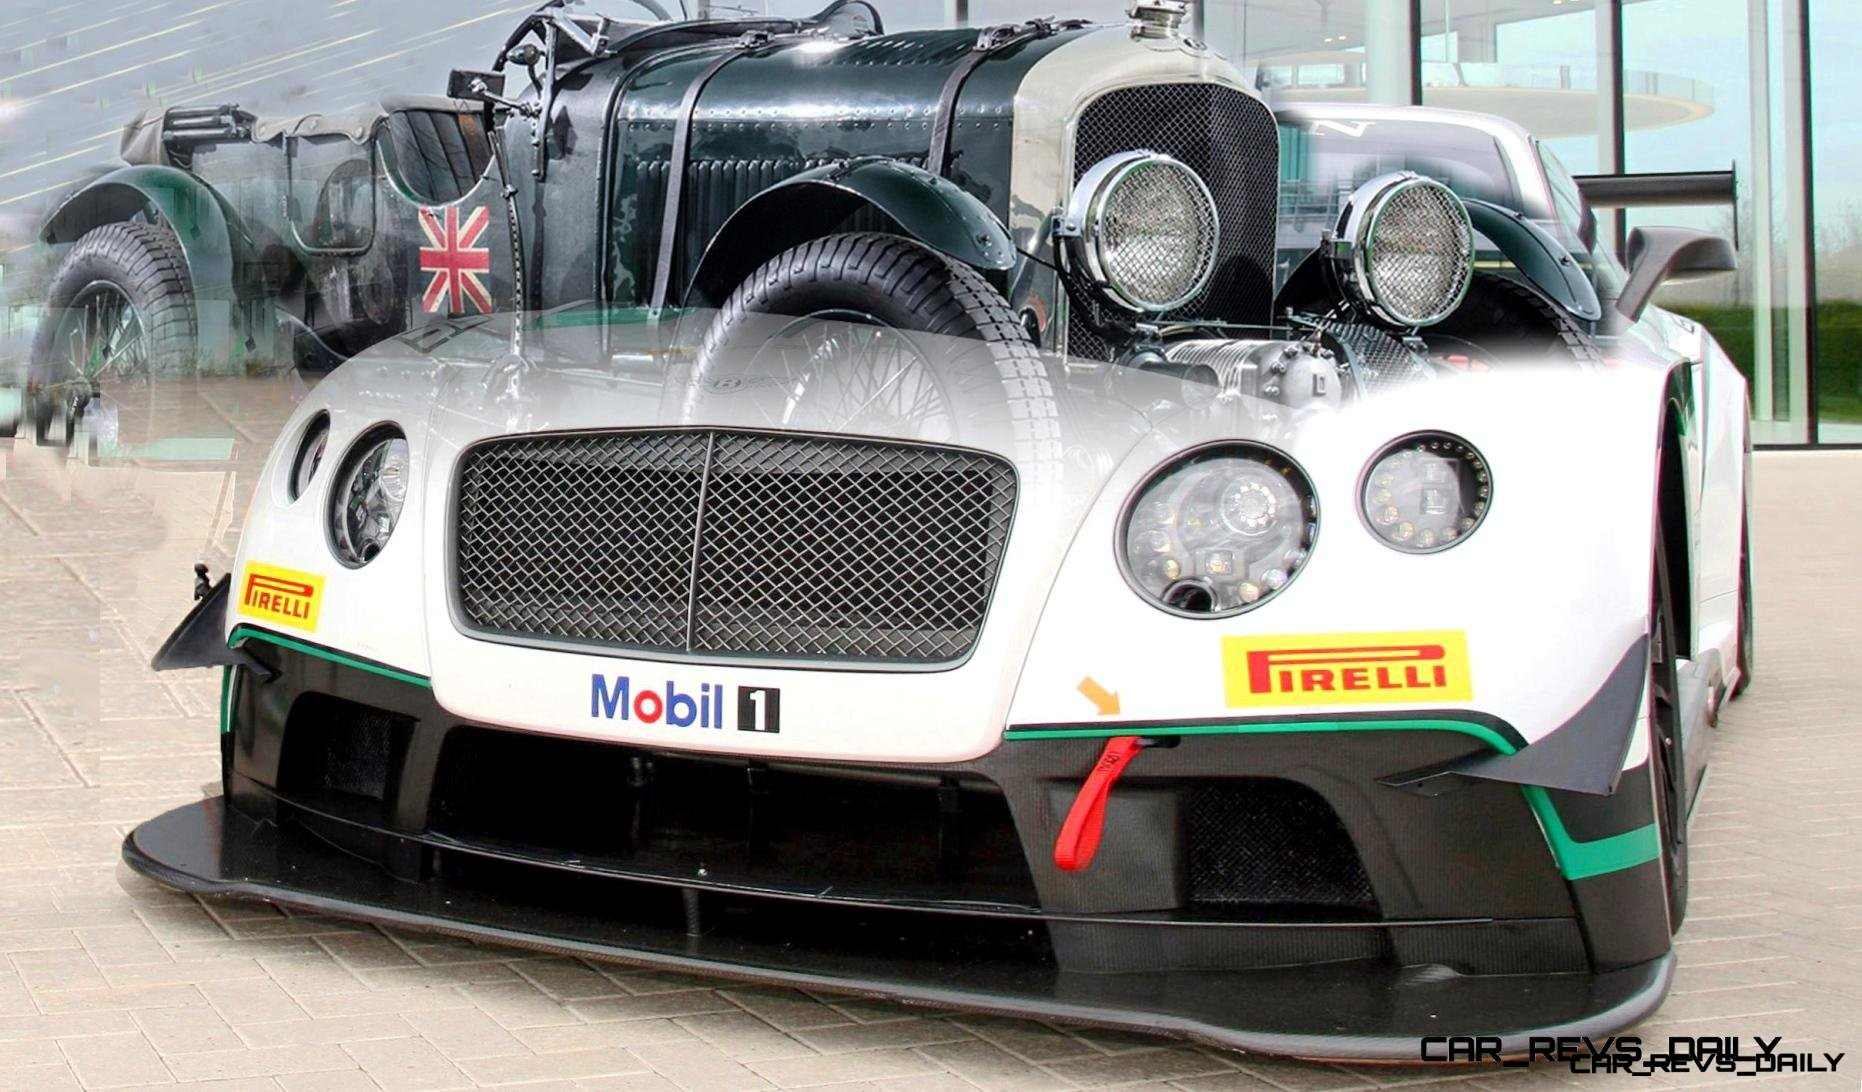 Bentley-Boys-swap-four-wheels-for-two-in-epic-chhxgfbarity-challenge